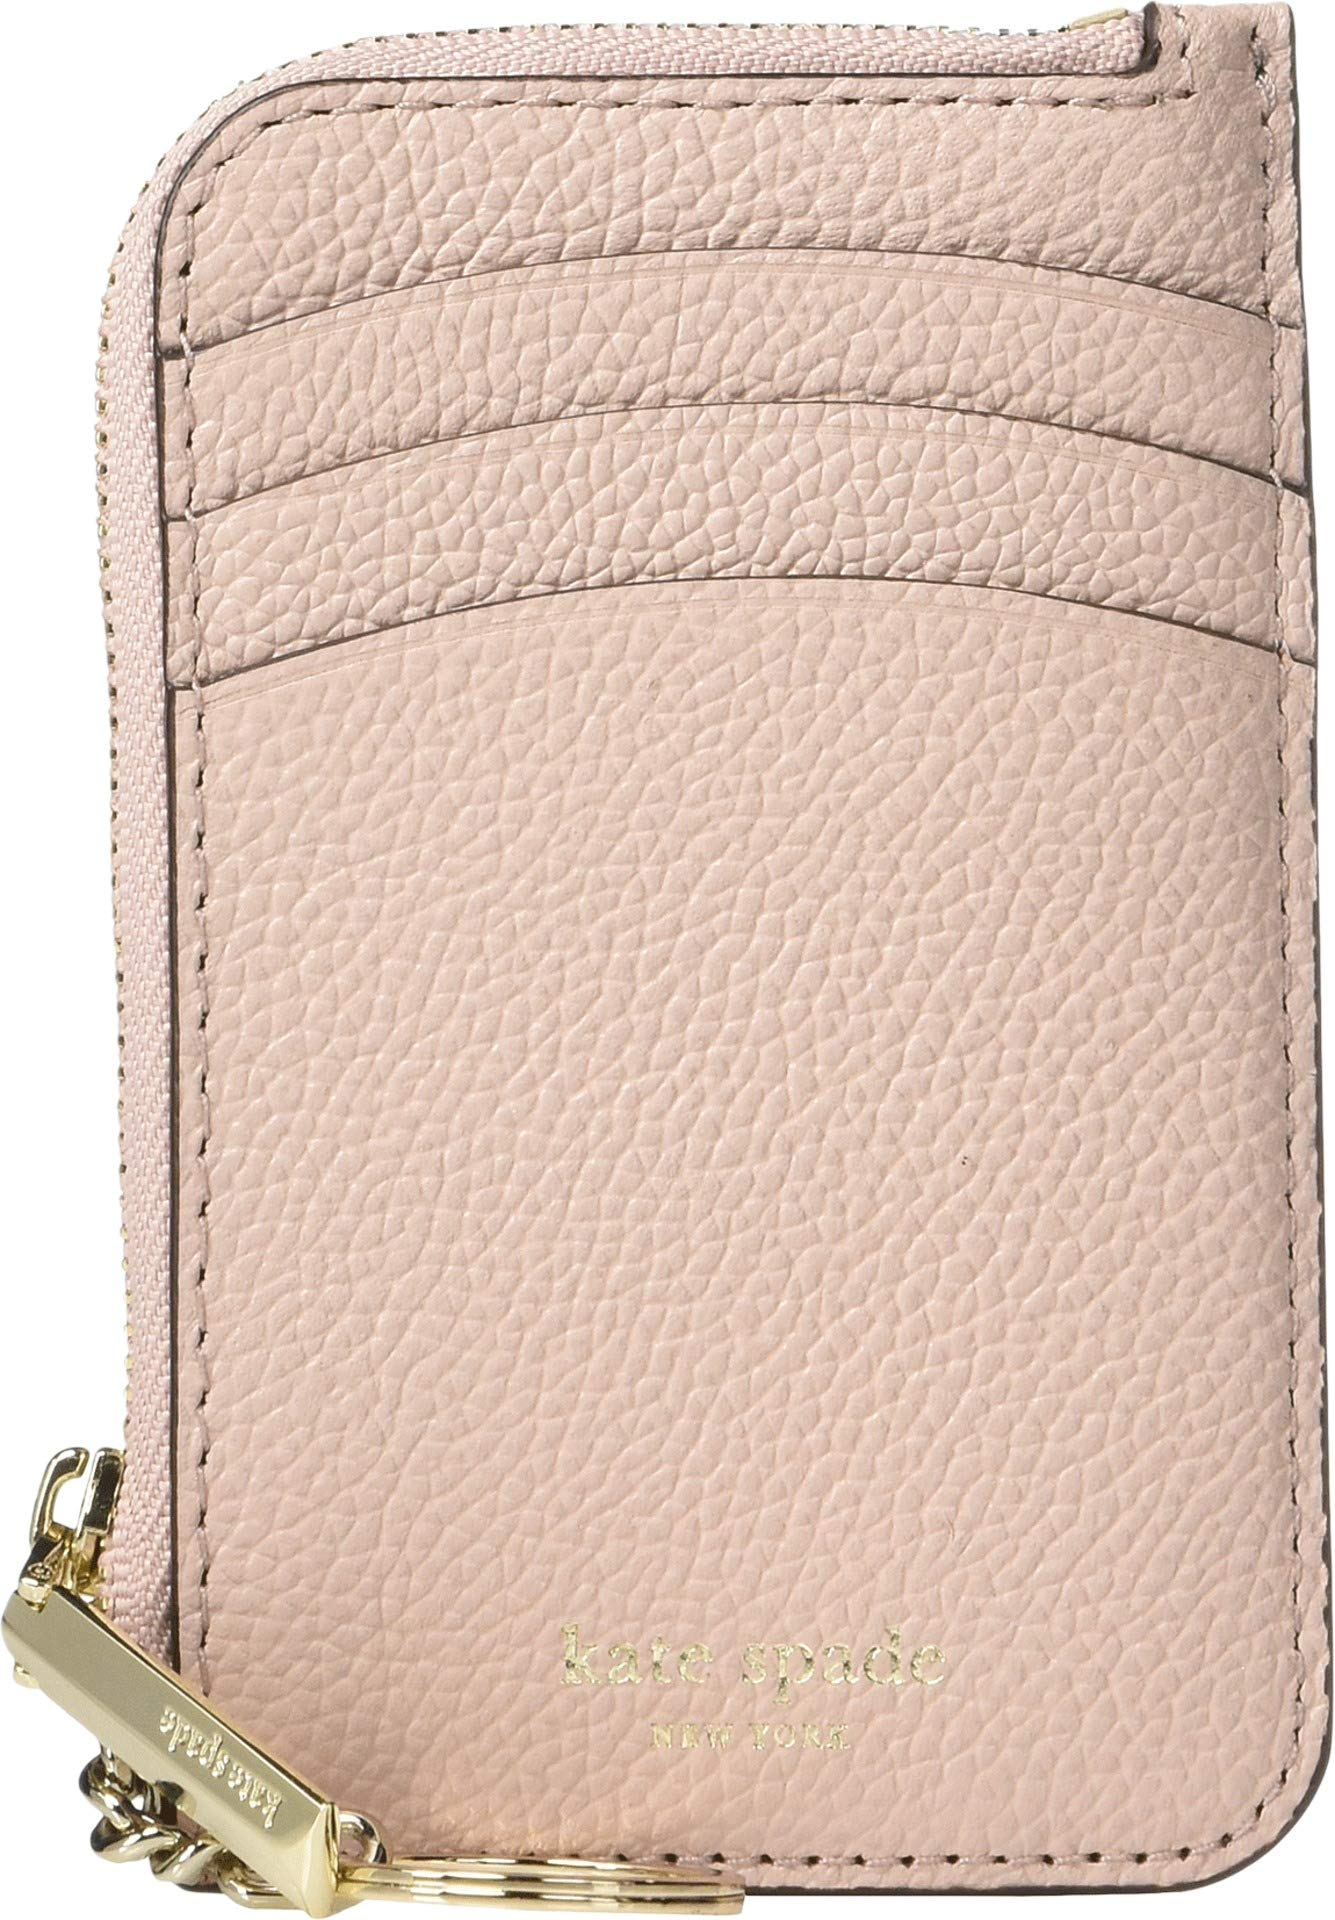 Kate Spade New York Women's Margaux Zip Card Holder, Pale Vellum, One Size